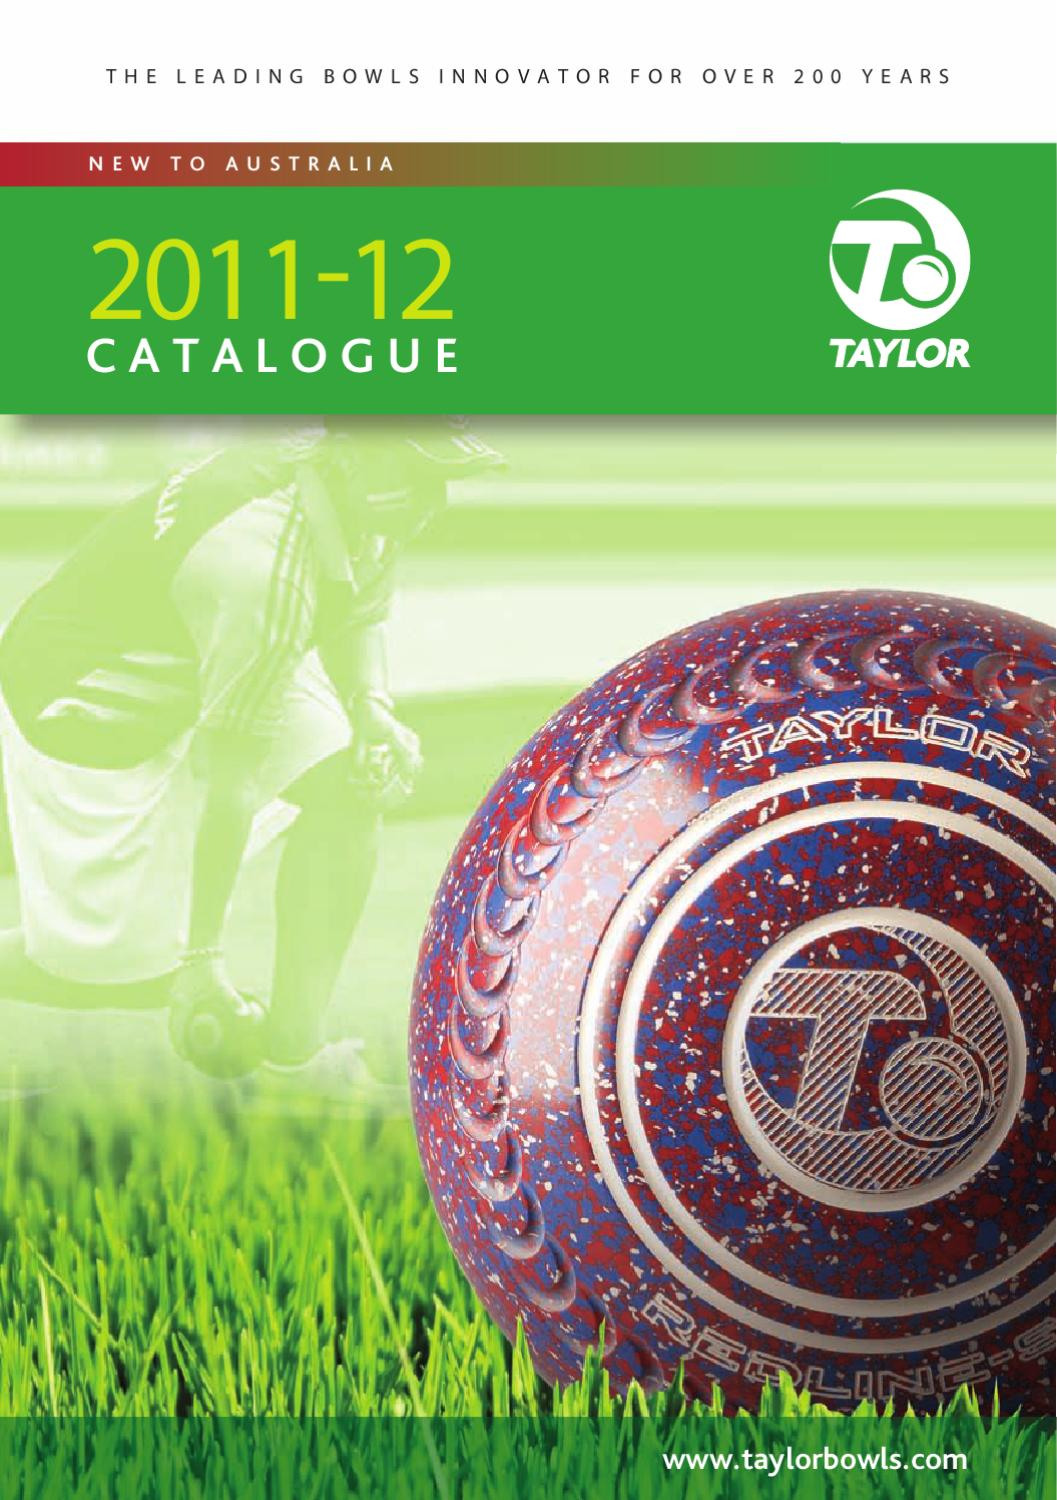 Taylor bowls australia catalogue 2012 by euan johnstone issuu geenschuldenfo Choice Image